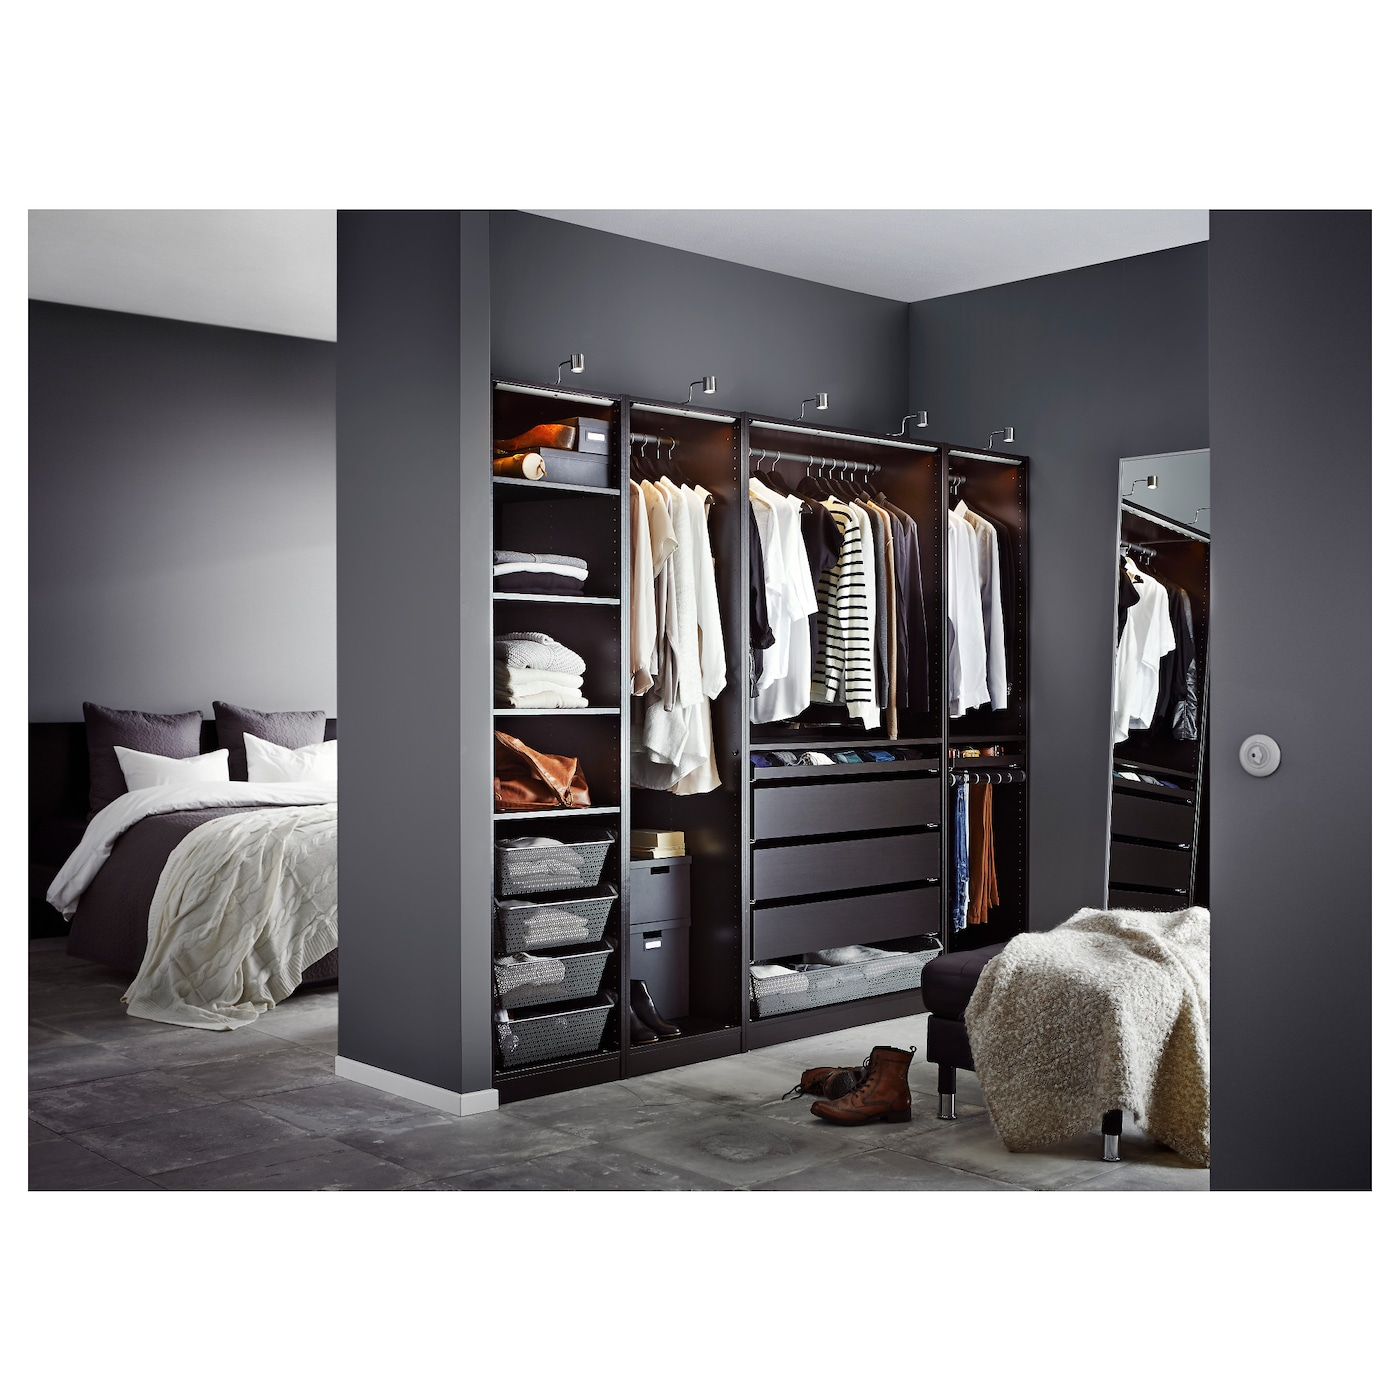 pax wardrobe black brown 250x58x201 cm ikea. Black Bedroom Furniture Sets. Home Design Ideas